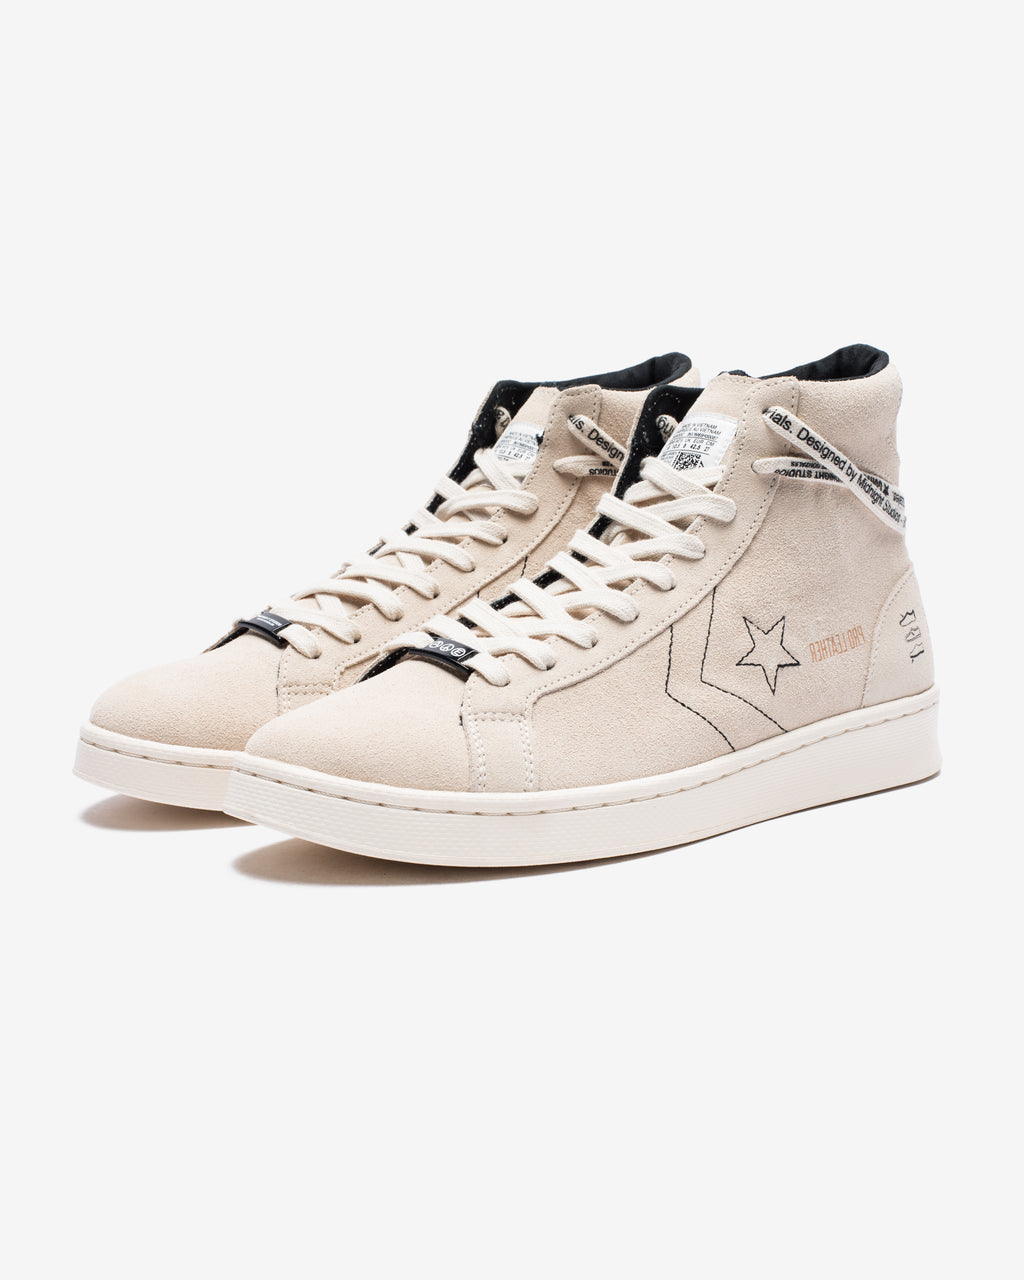 CONVERSE X MIDNIGHT STUDIOS PRO LEATHER HI - WHITE/EGRET/BLACK